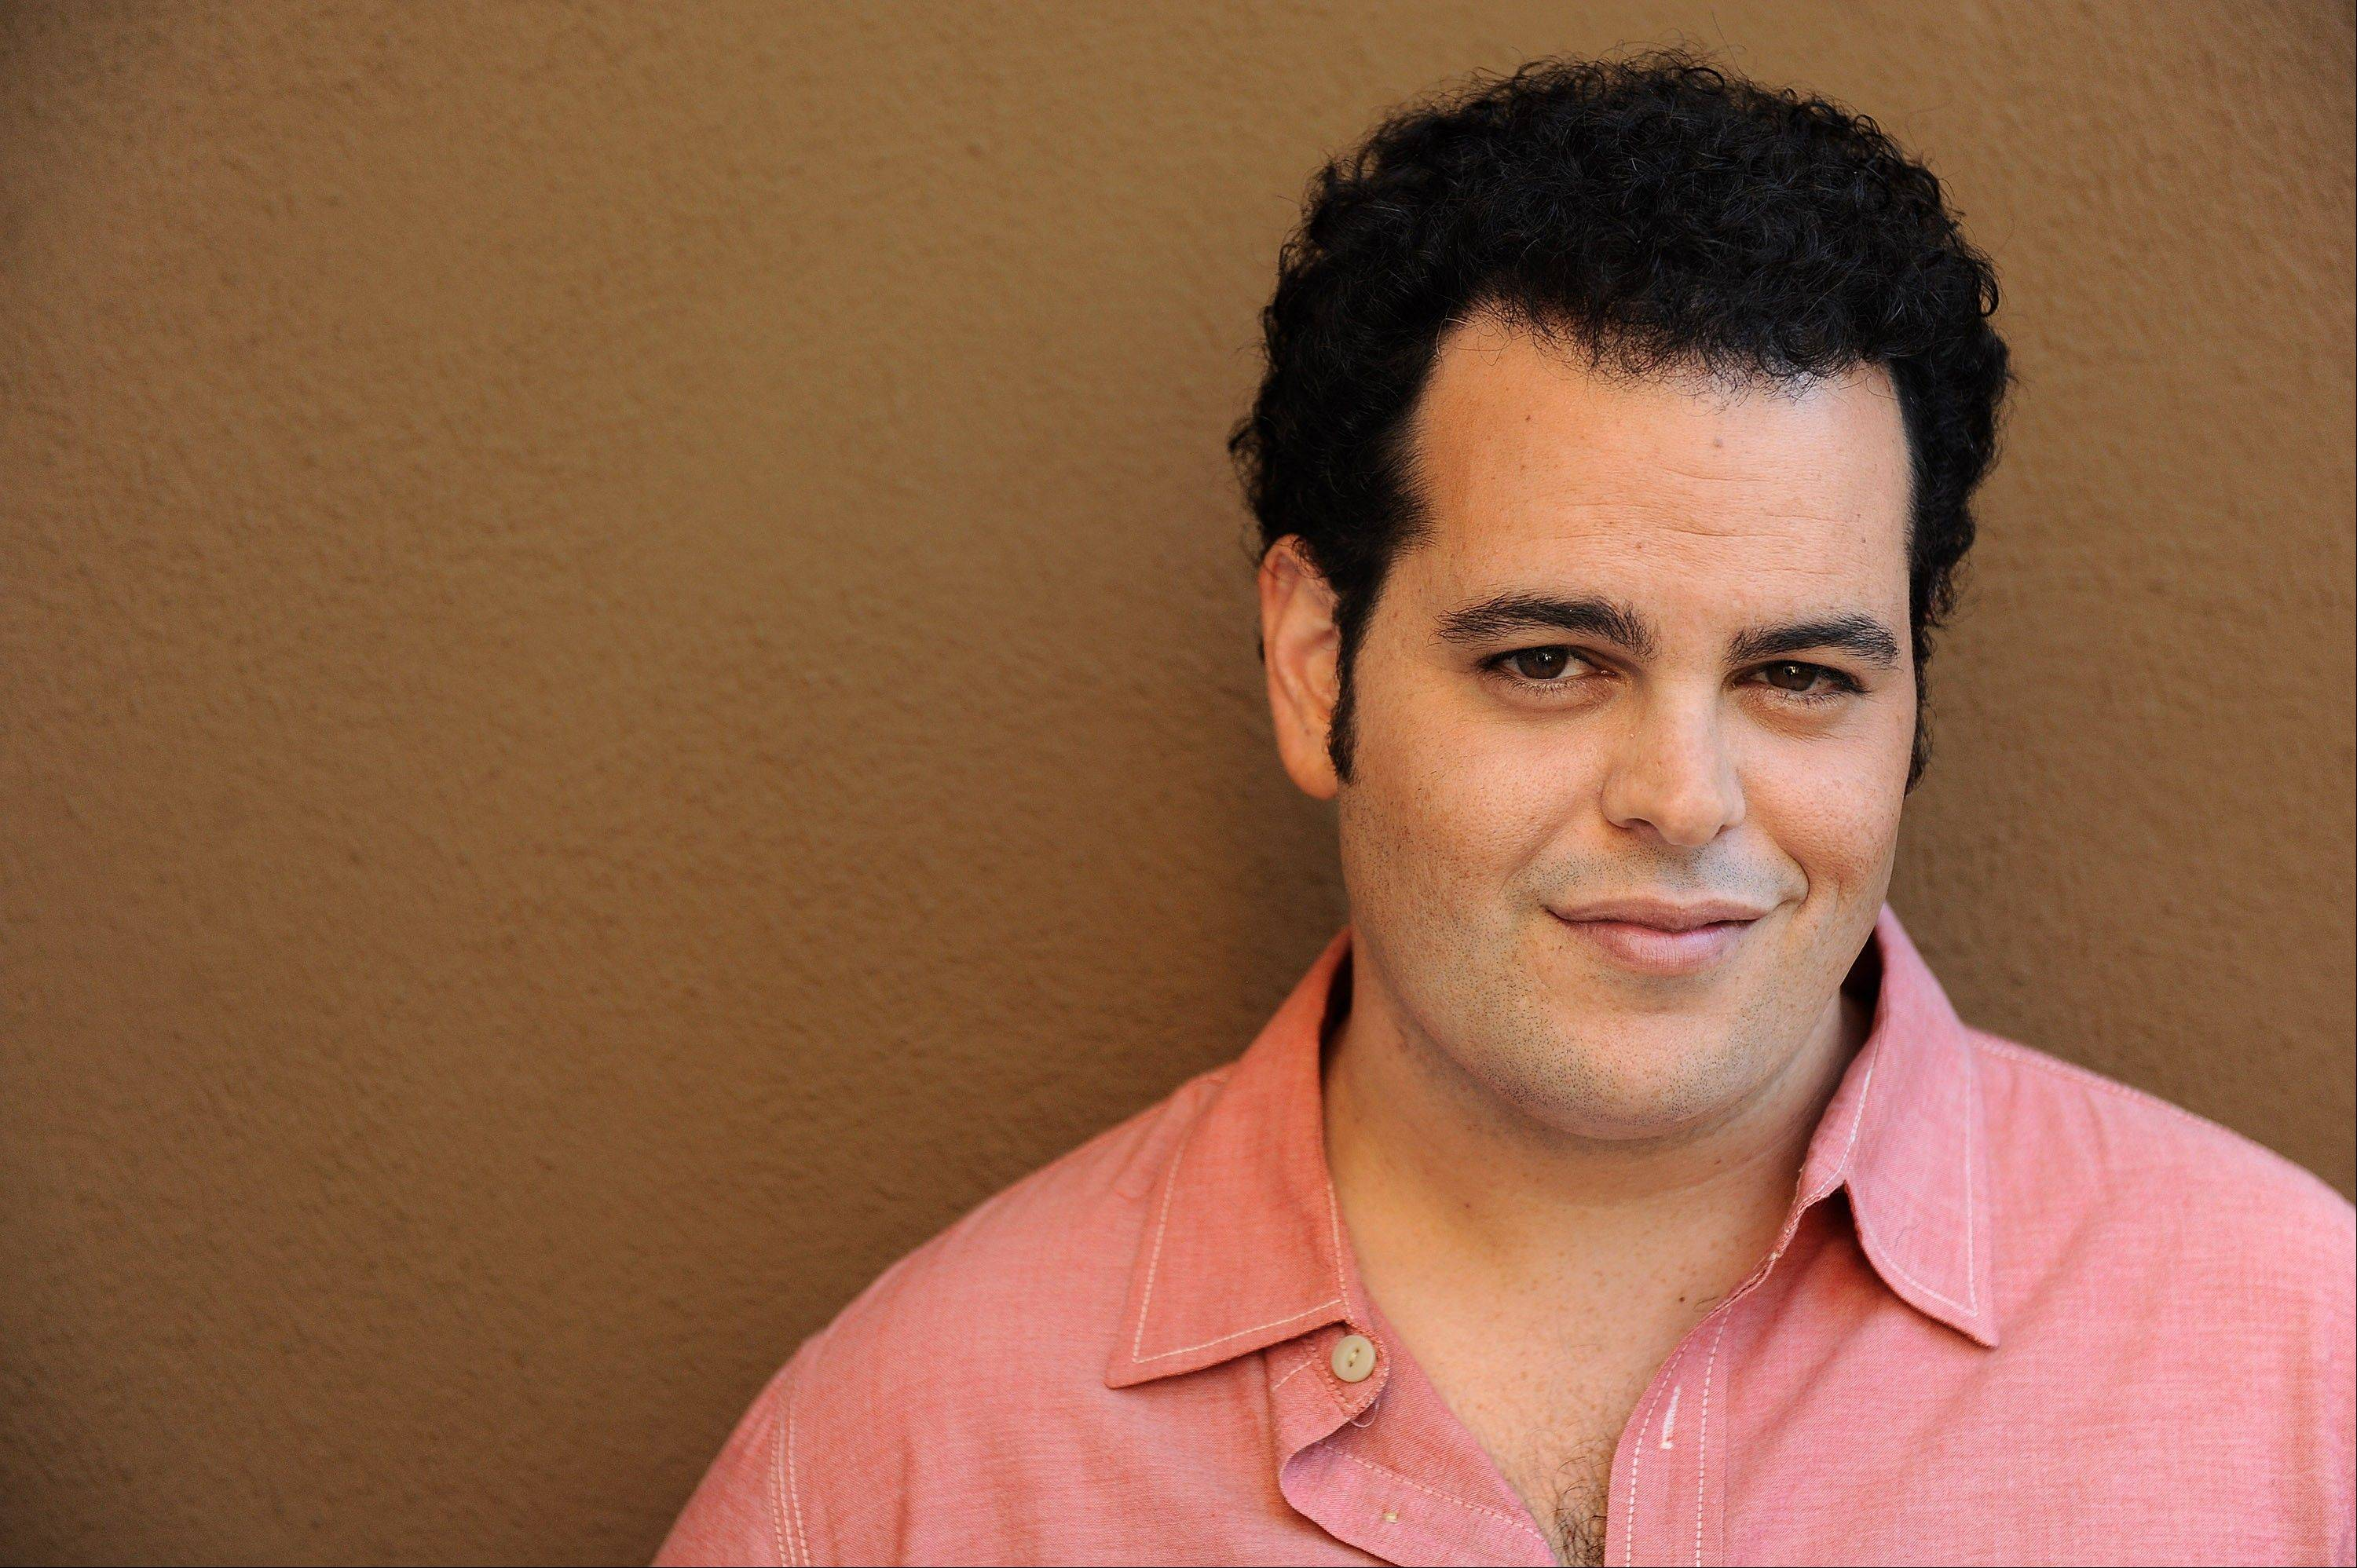 FILE - In this Monday, Sept. 16, 2013 file photo, Josh Gad poses for a portrait at the Four Seasons Hotel, in Los Angeles. Gad has a spate of acting and writing projects in the works, including an upcoming TV show with Billy Crystal and starring role in a Sam Kinison biopic, plus ìThanks for Sharing,î in theaters Friday, Sept. 20, 2013. (Photo by Jordan Strauss/Invision/AP, File)